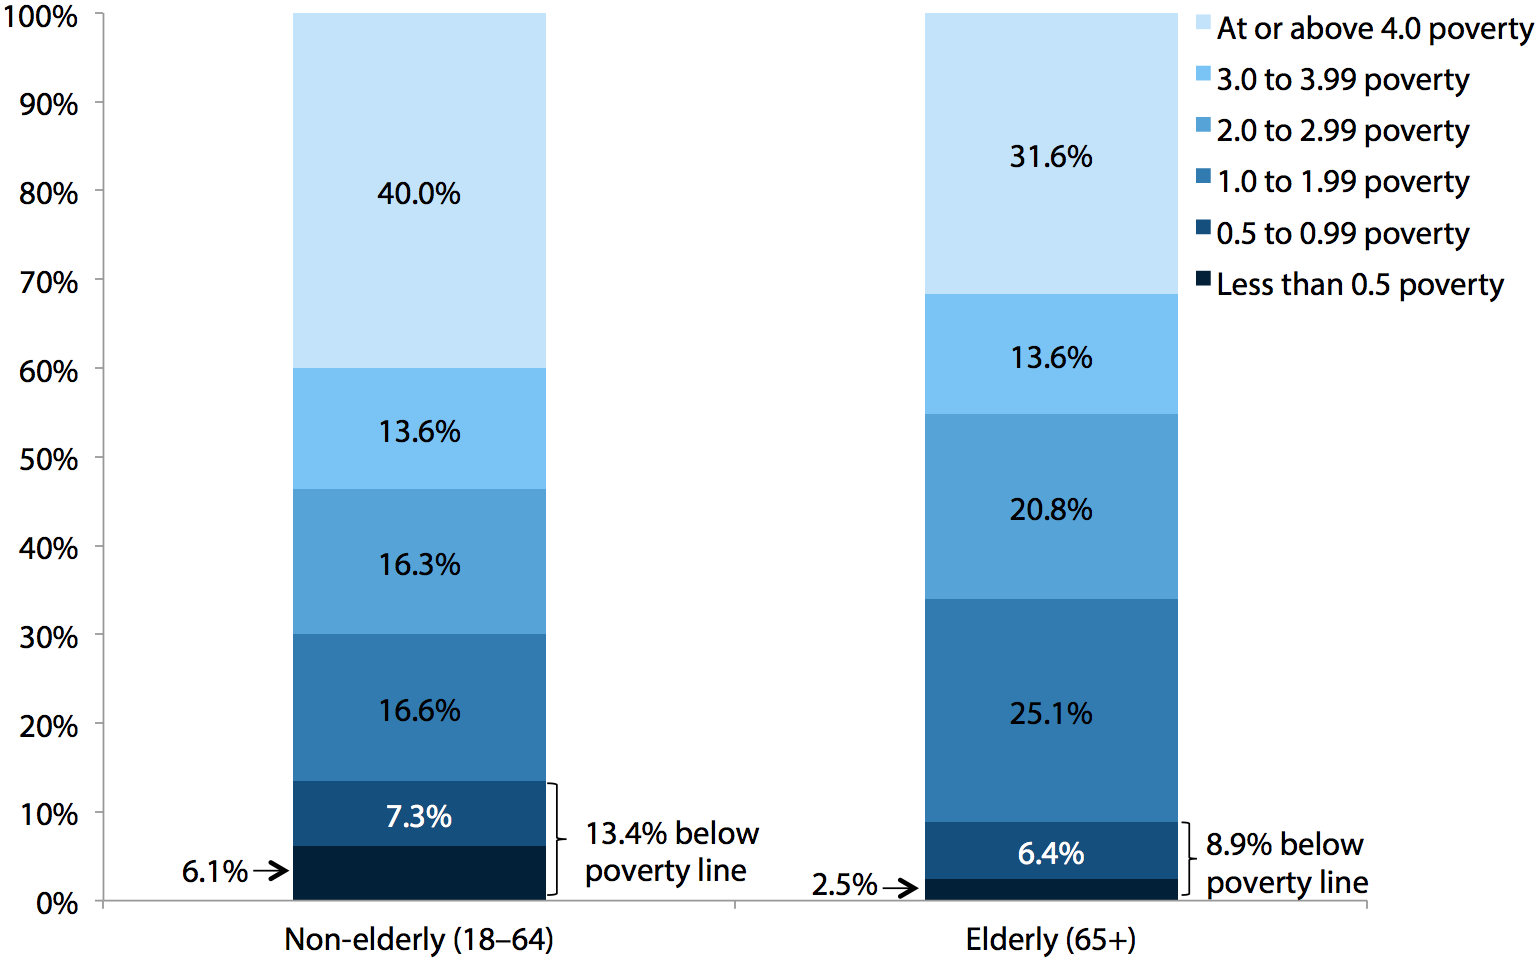 Share of elderly and non-elderly adults at various income-to-poverty-threshold ratios (using official poverty line), 2009–2011 average